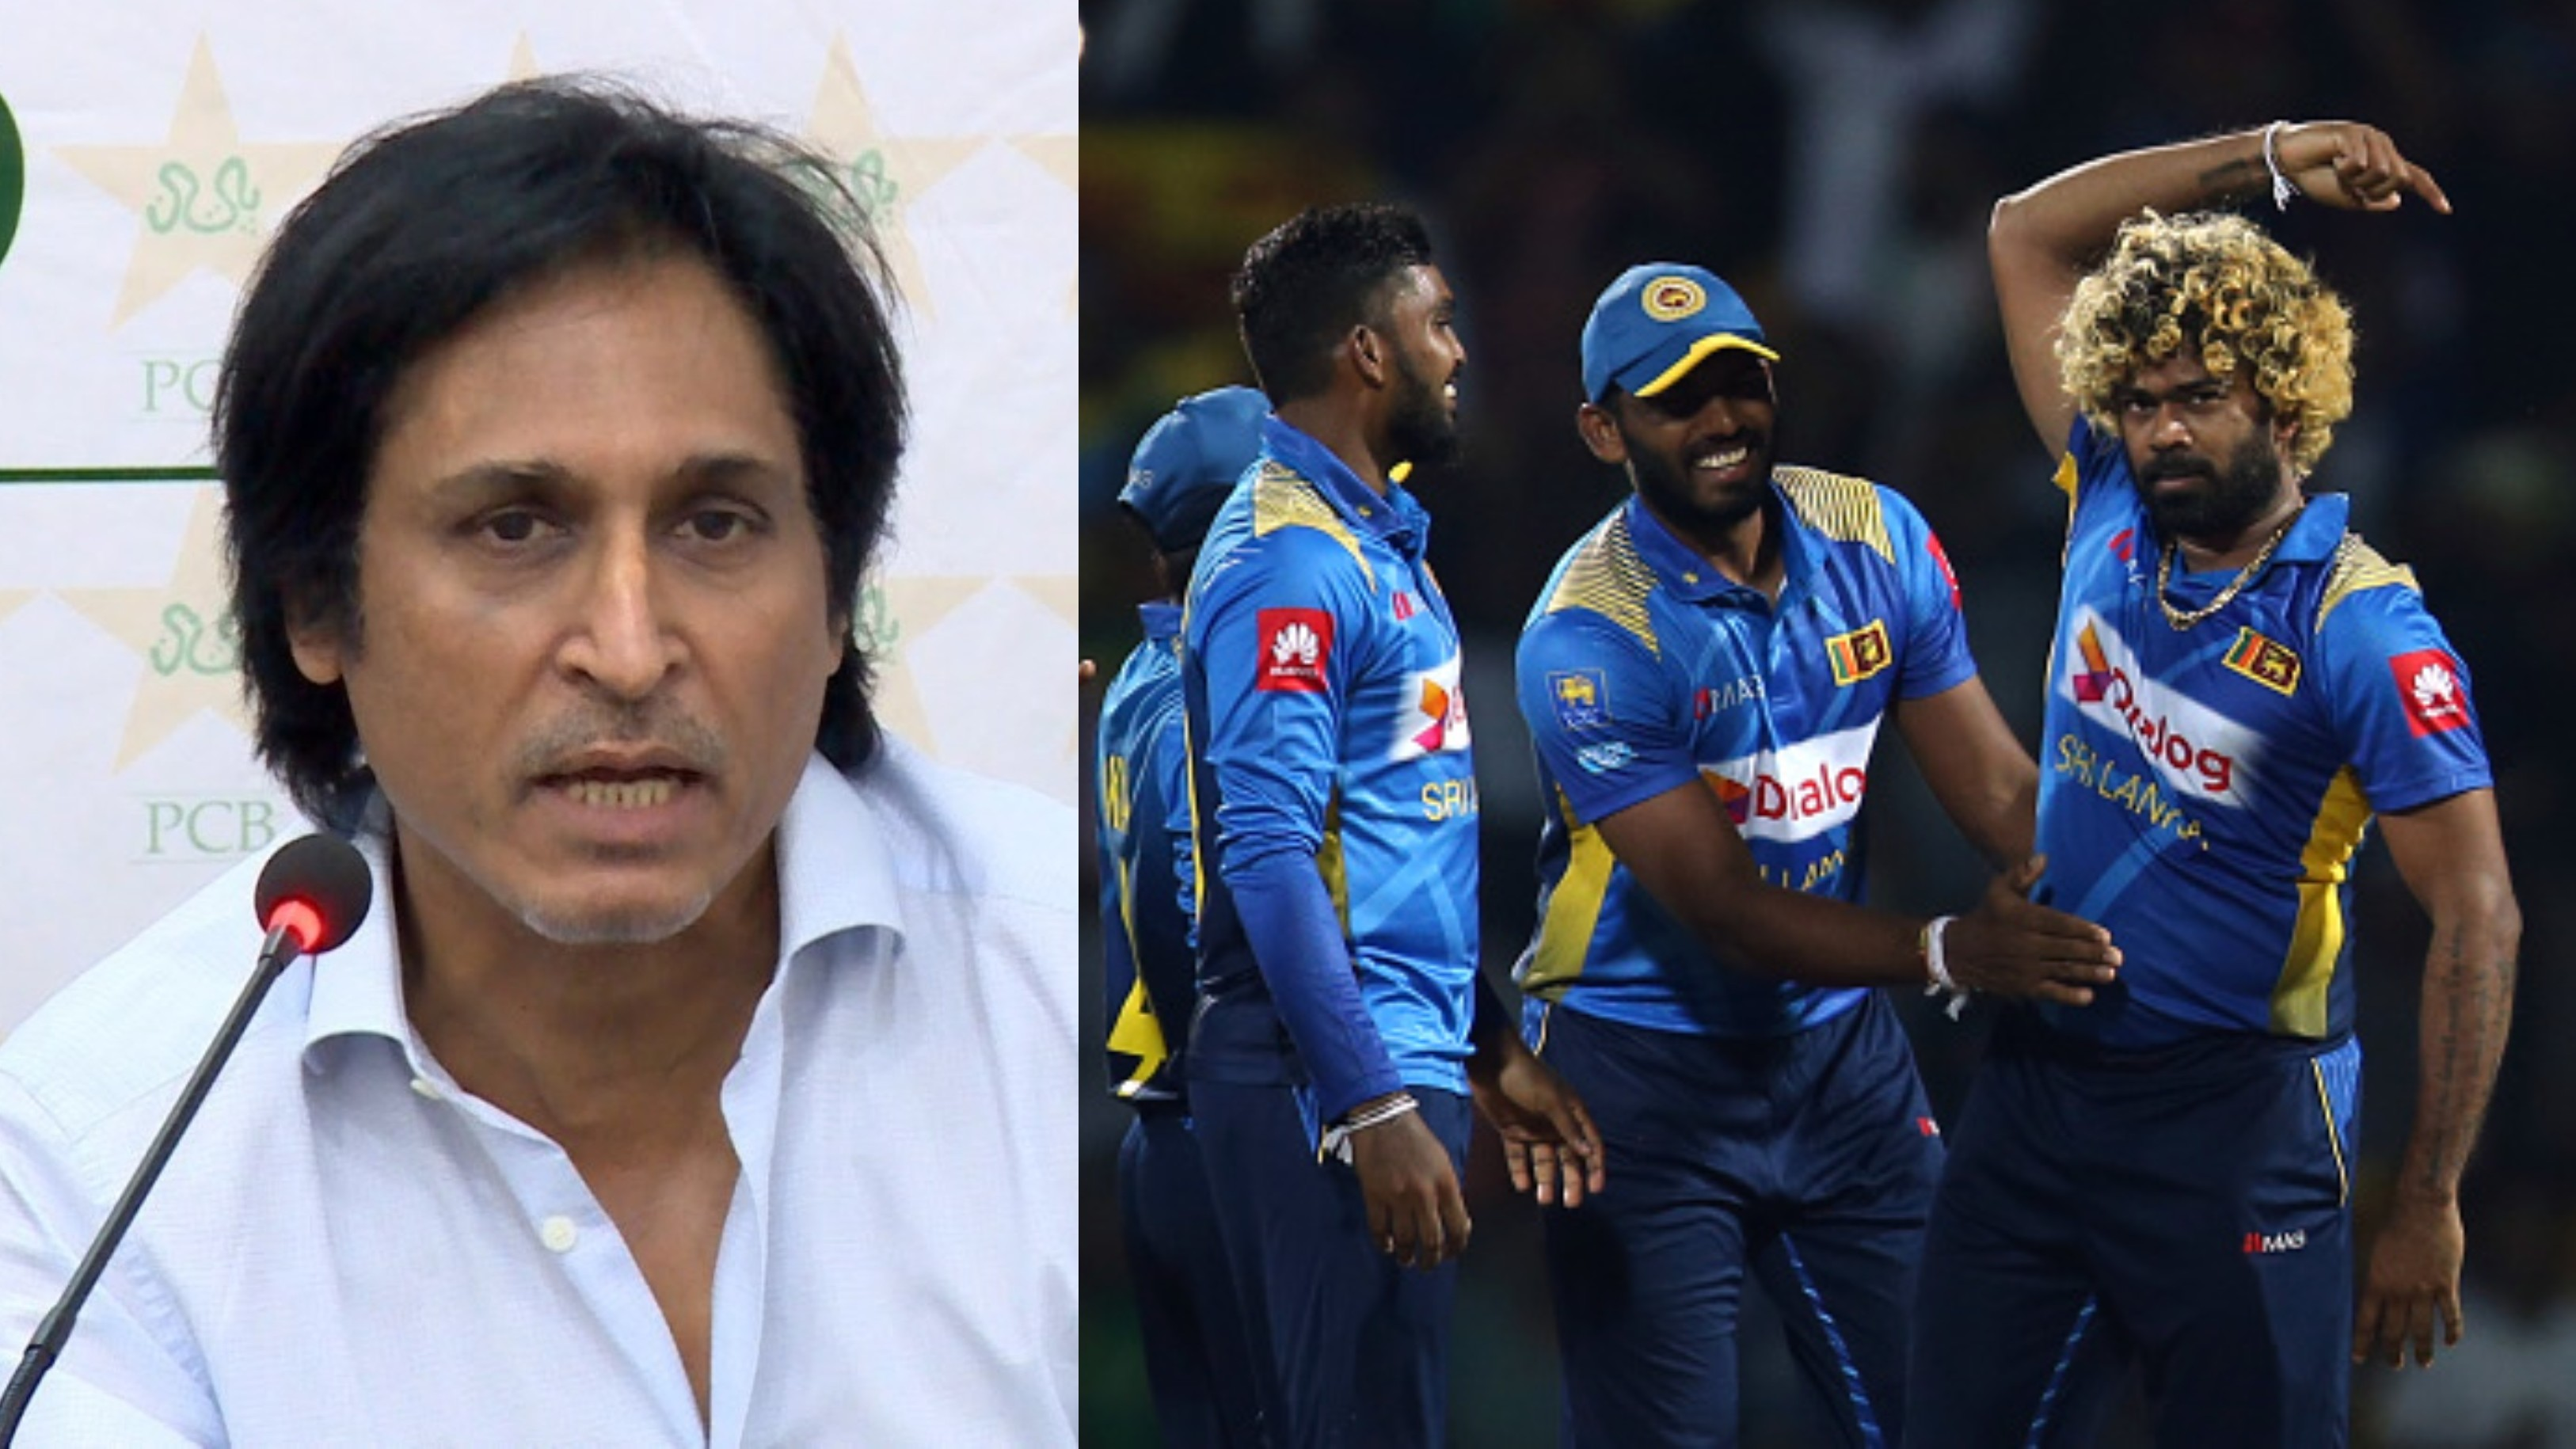 PAK v SL 2019: Ramiz Raja hits out at Sri Lankan players for pulling out of tour to Pakistan